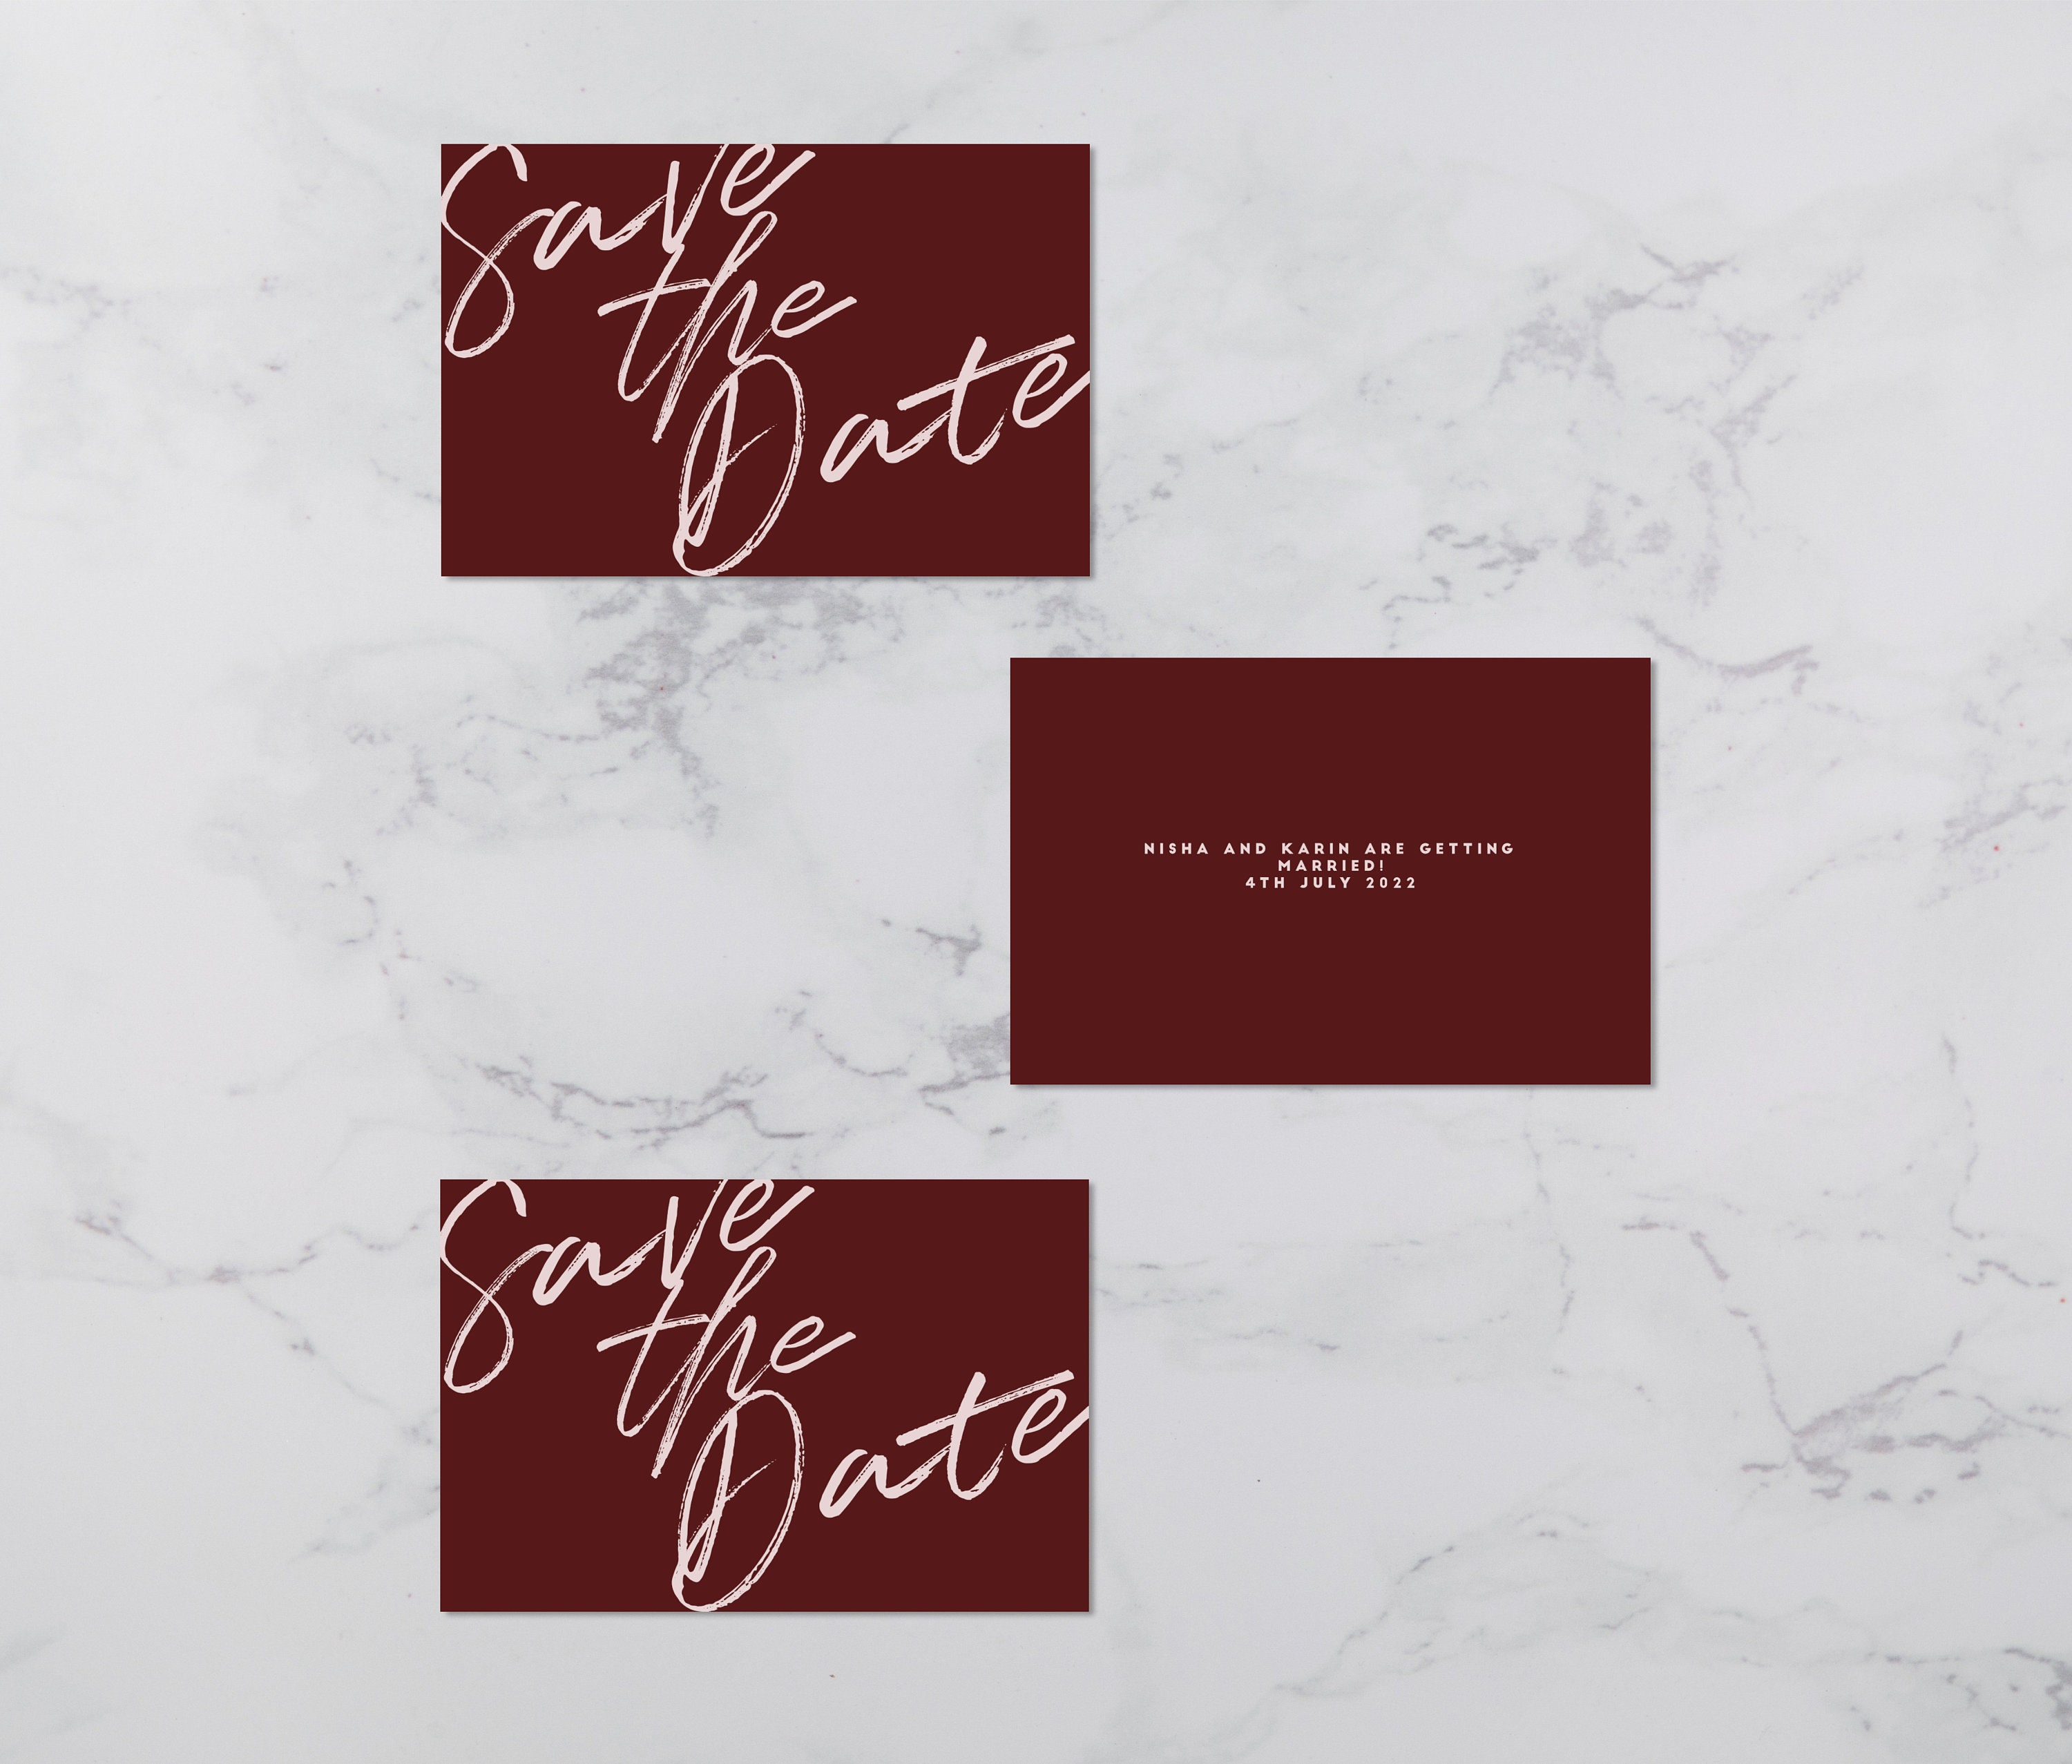 Flat lay photograph showing 3 wedding save the date cards (some front-facing, some showing the reverse). Each card is burgundy